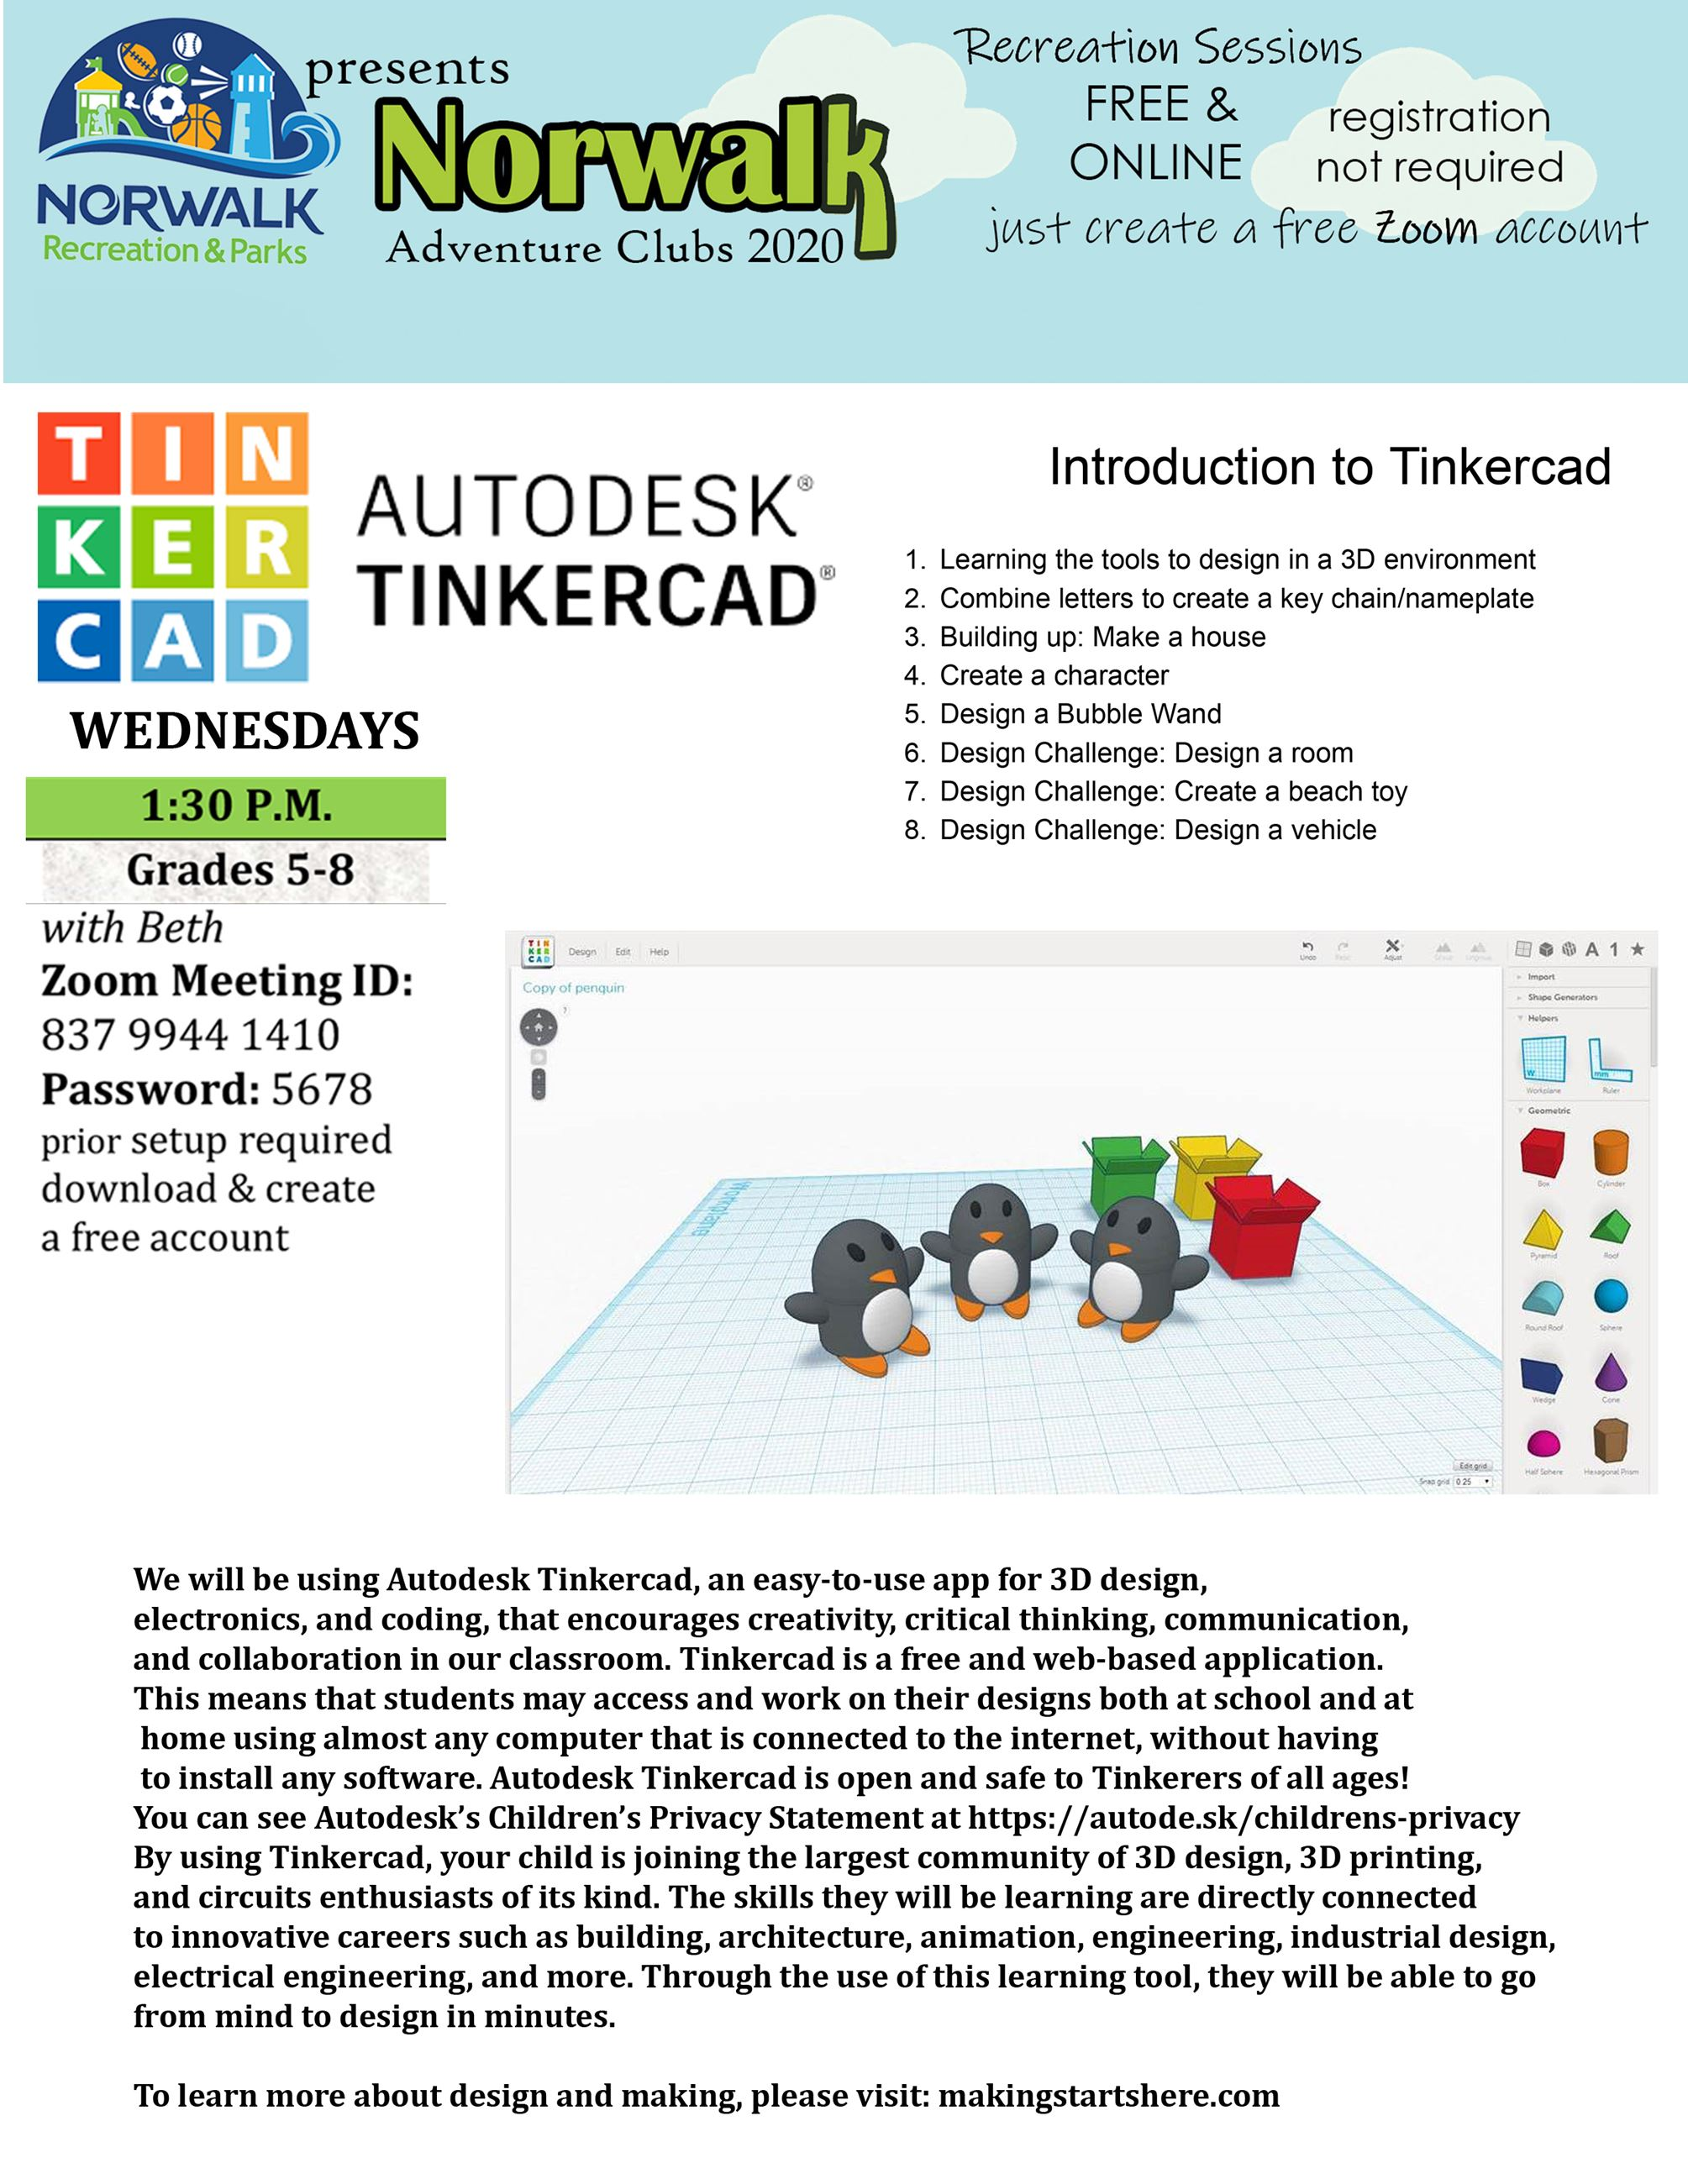 Introduction to Tinkercad - FLYER